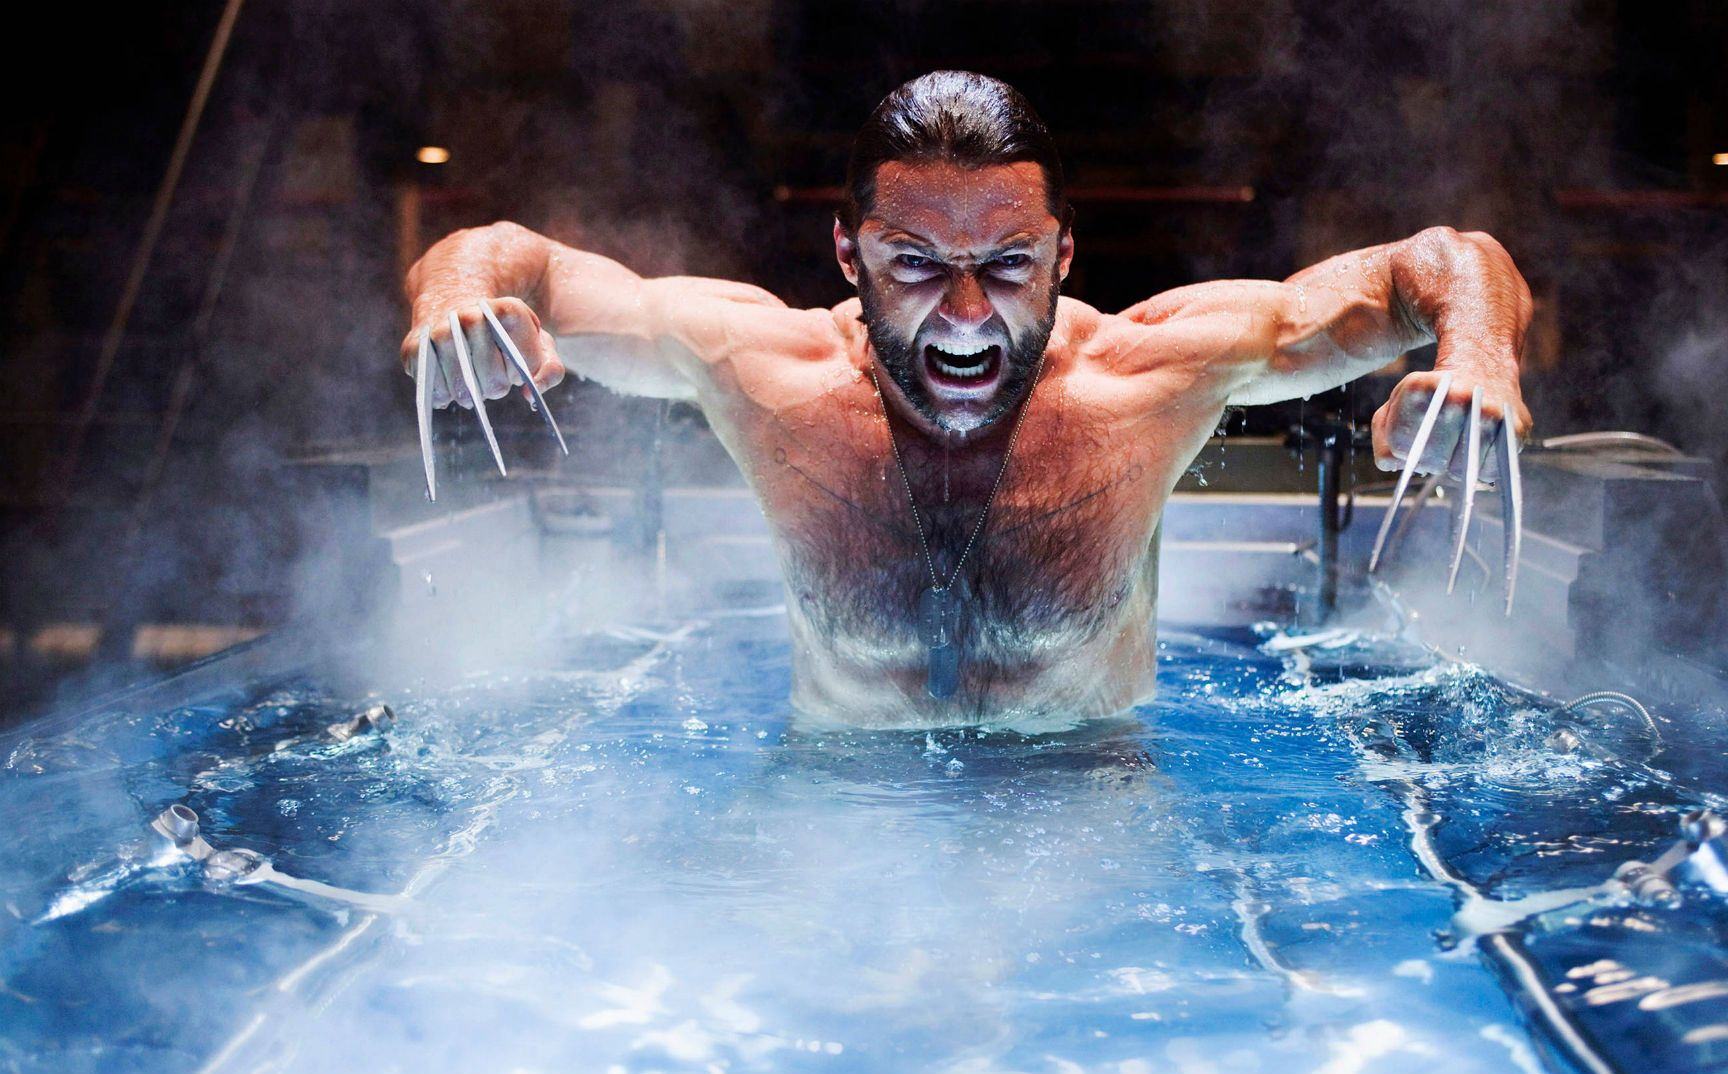 15 Surprising Things You Didn't Know About Wolverine's Claws